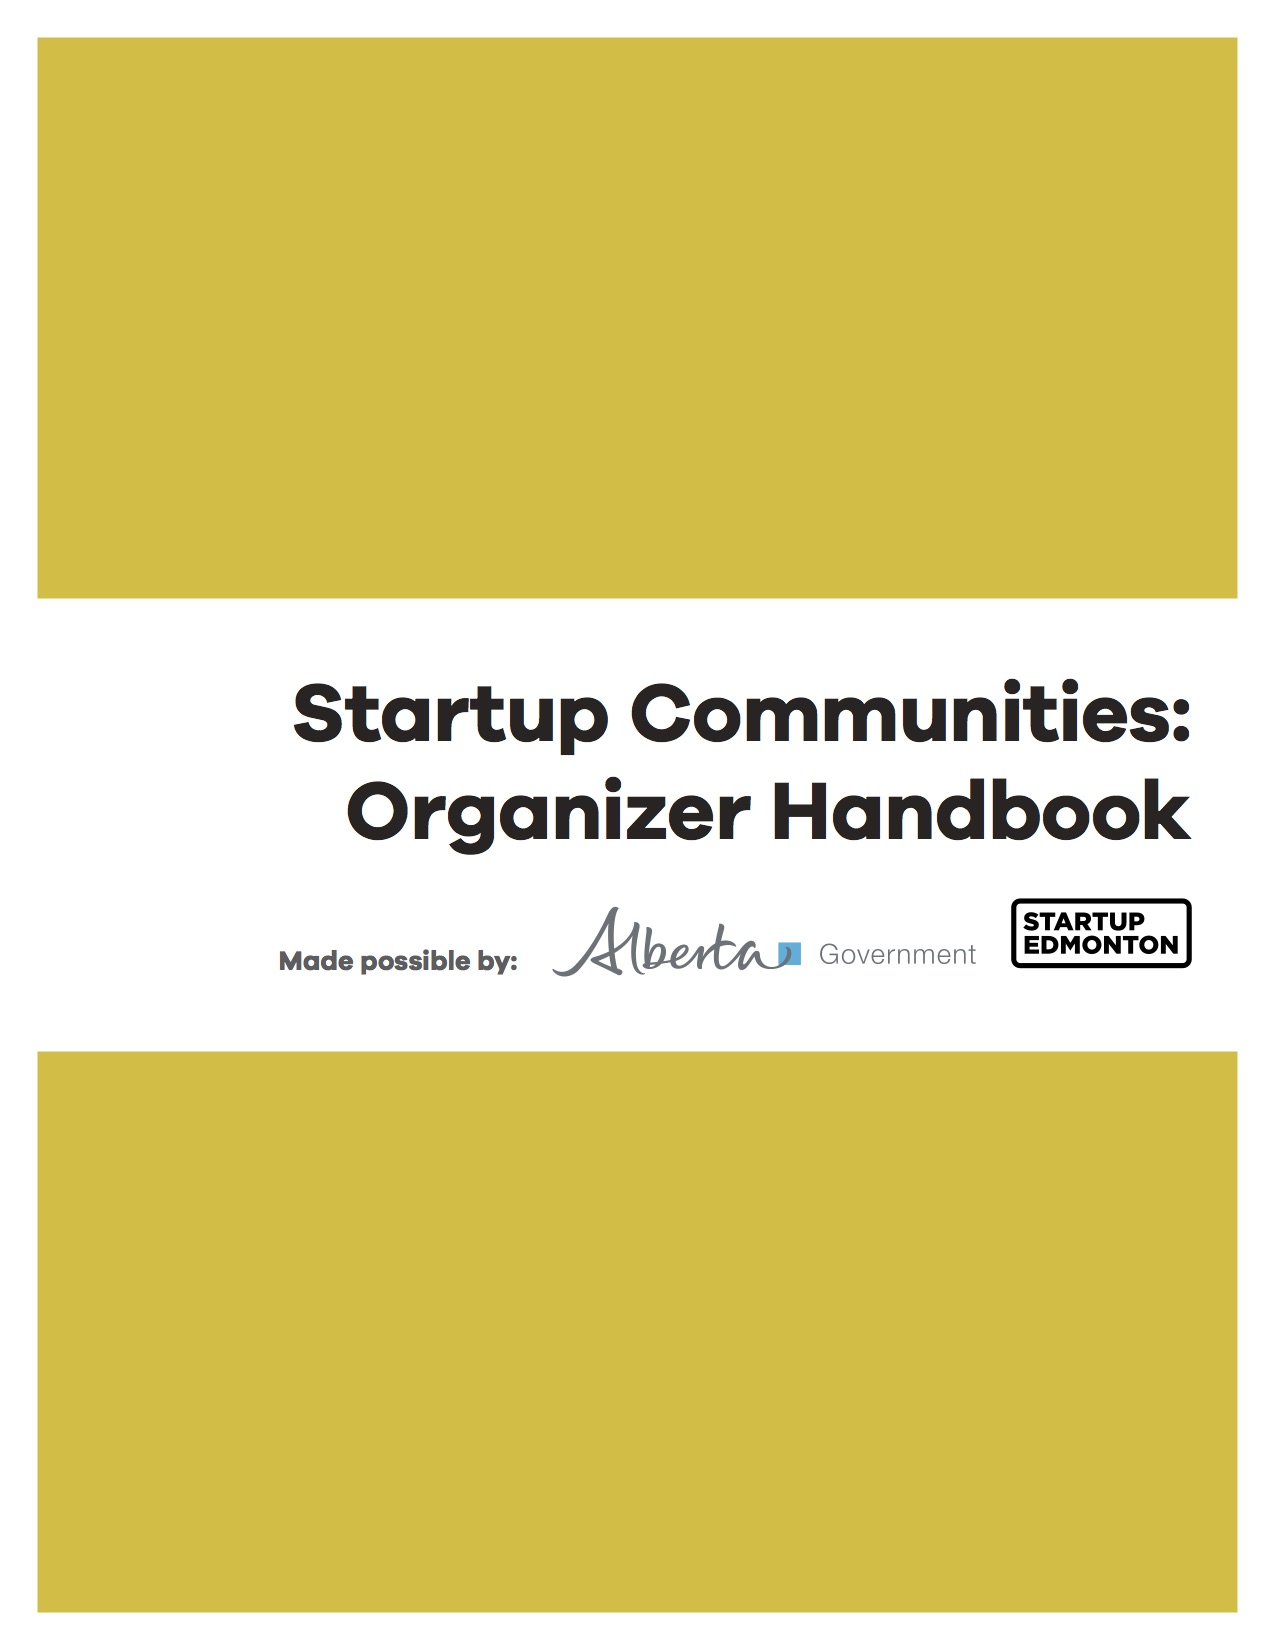 Click to download: Suggestions, formats, tools and templates to help foster community meetups in your town or city.